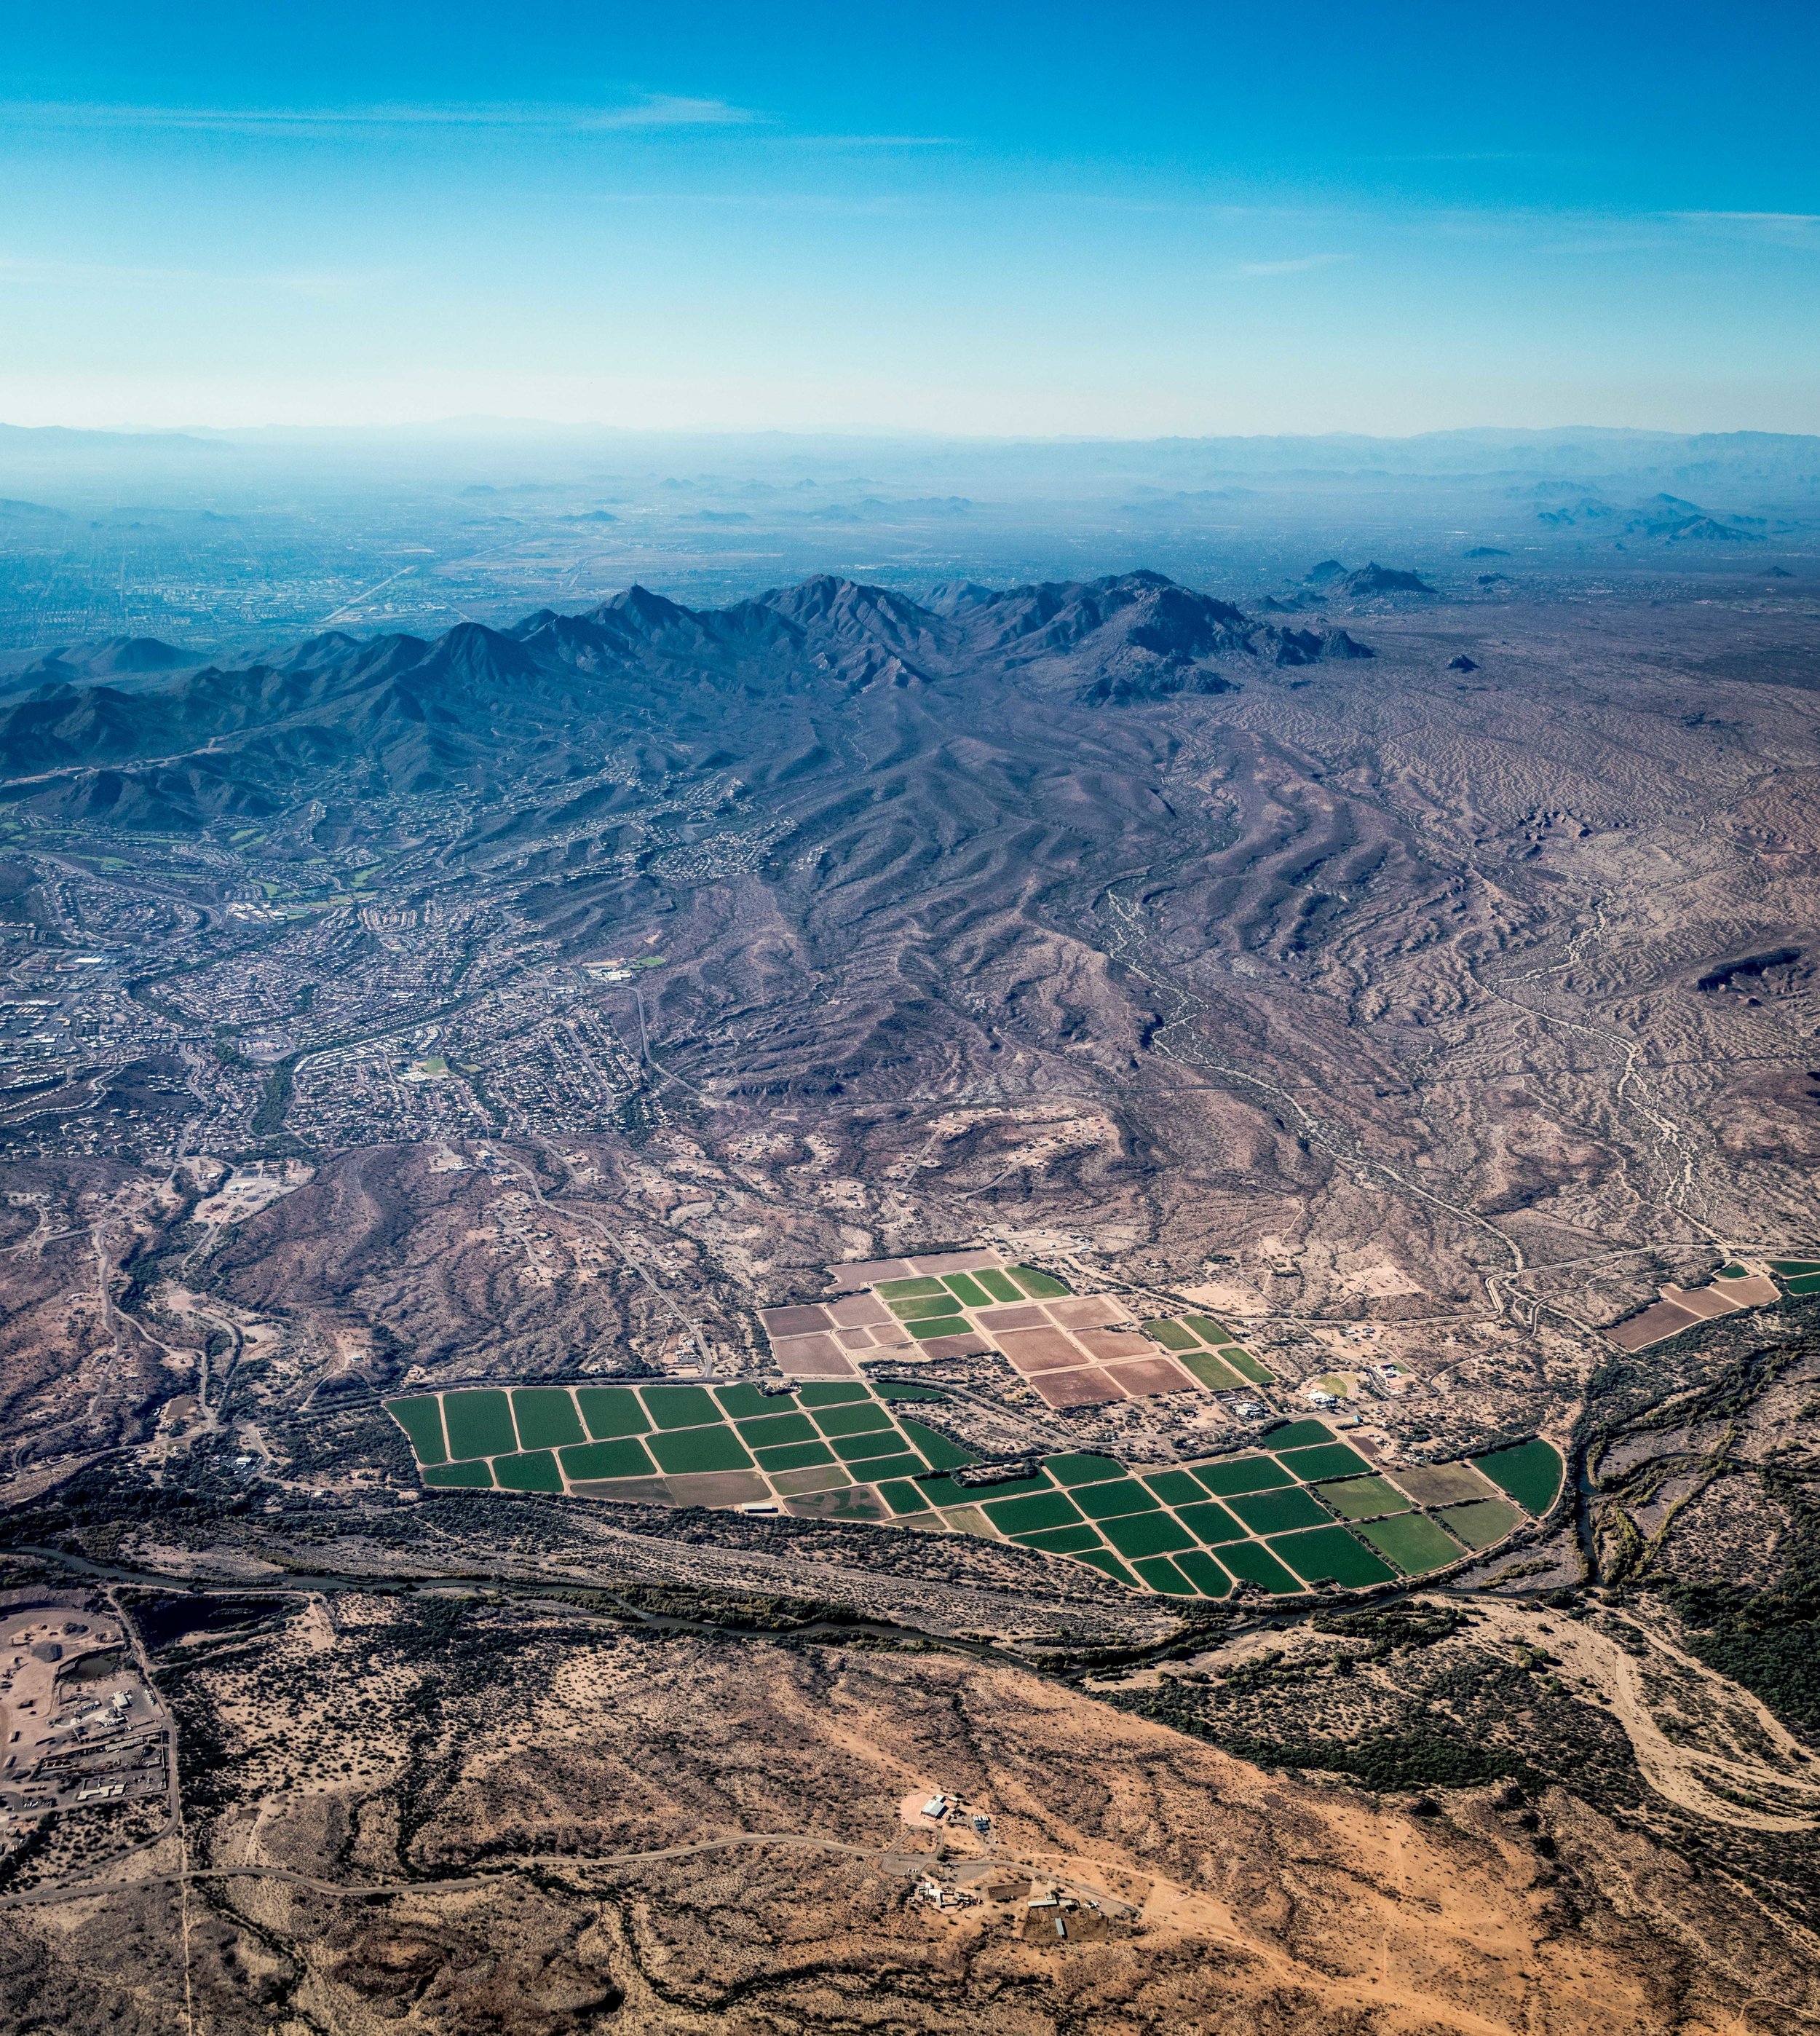 14-Irrigation Near Phoenix, AZ, Nov. 7, 2016.jpg